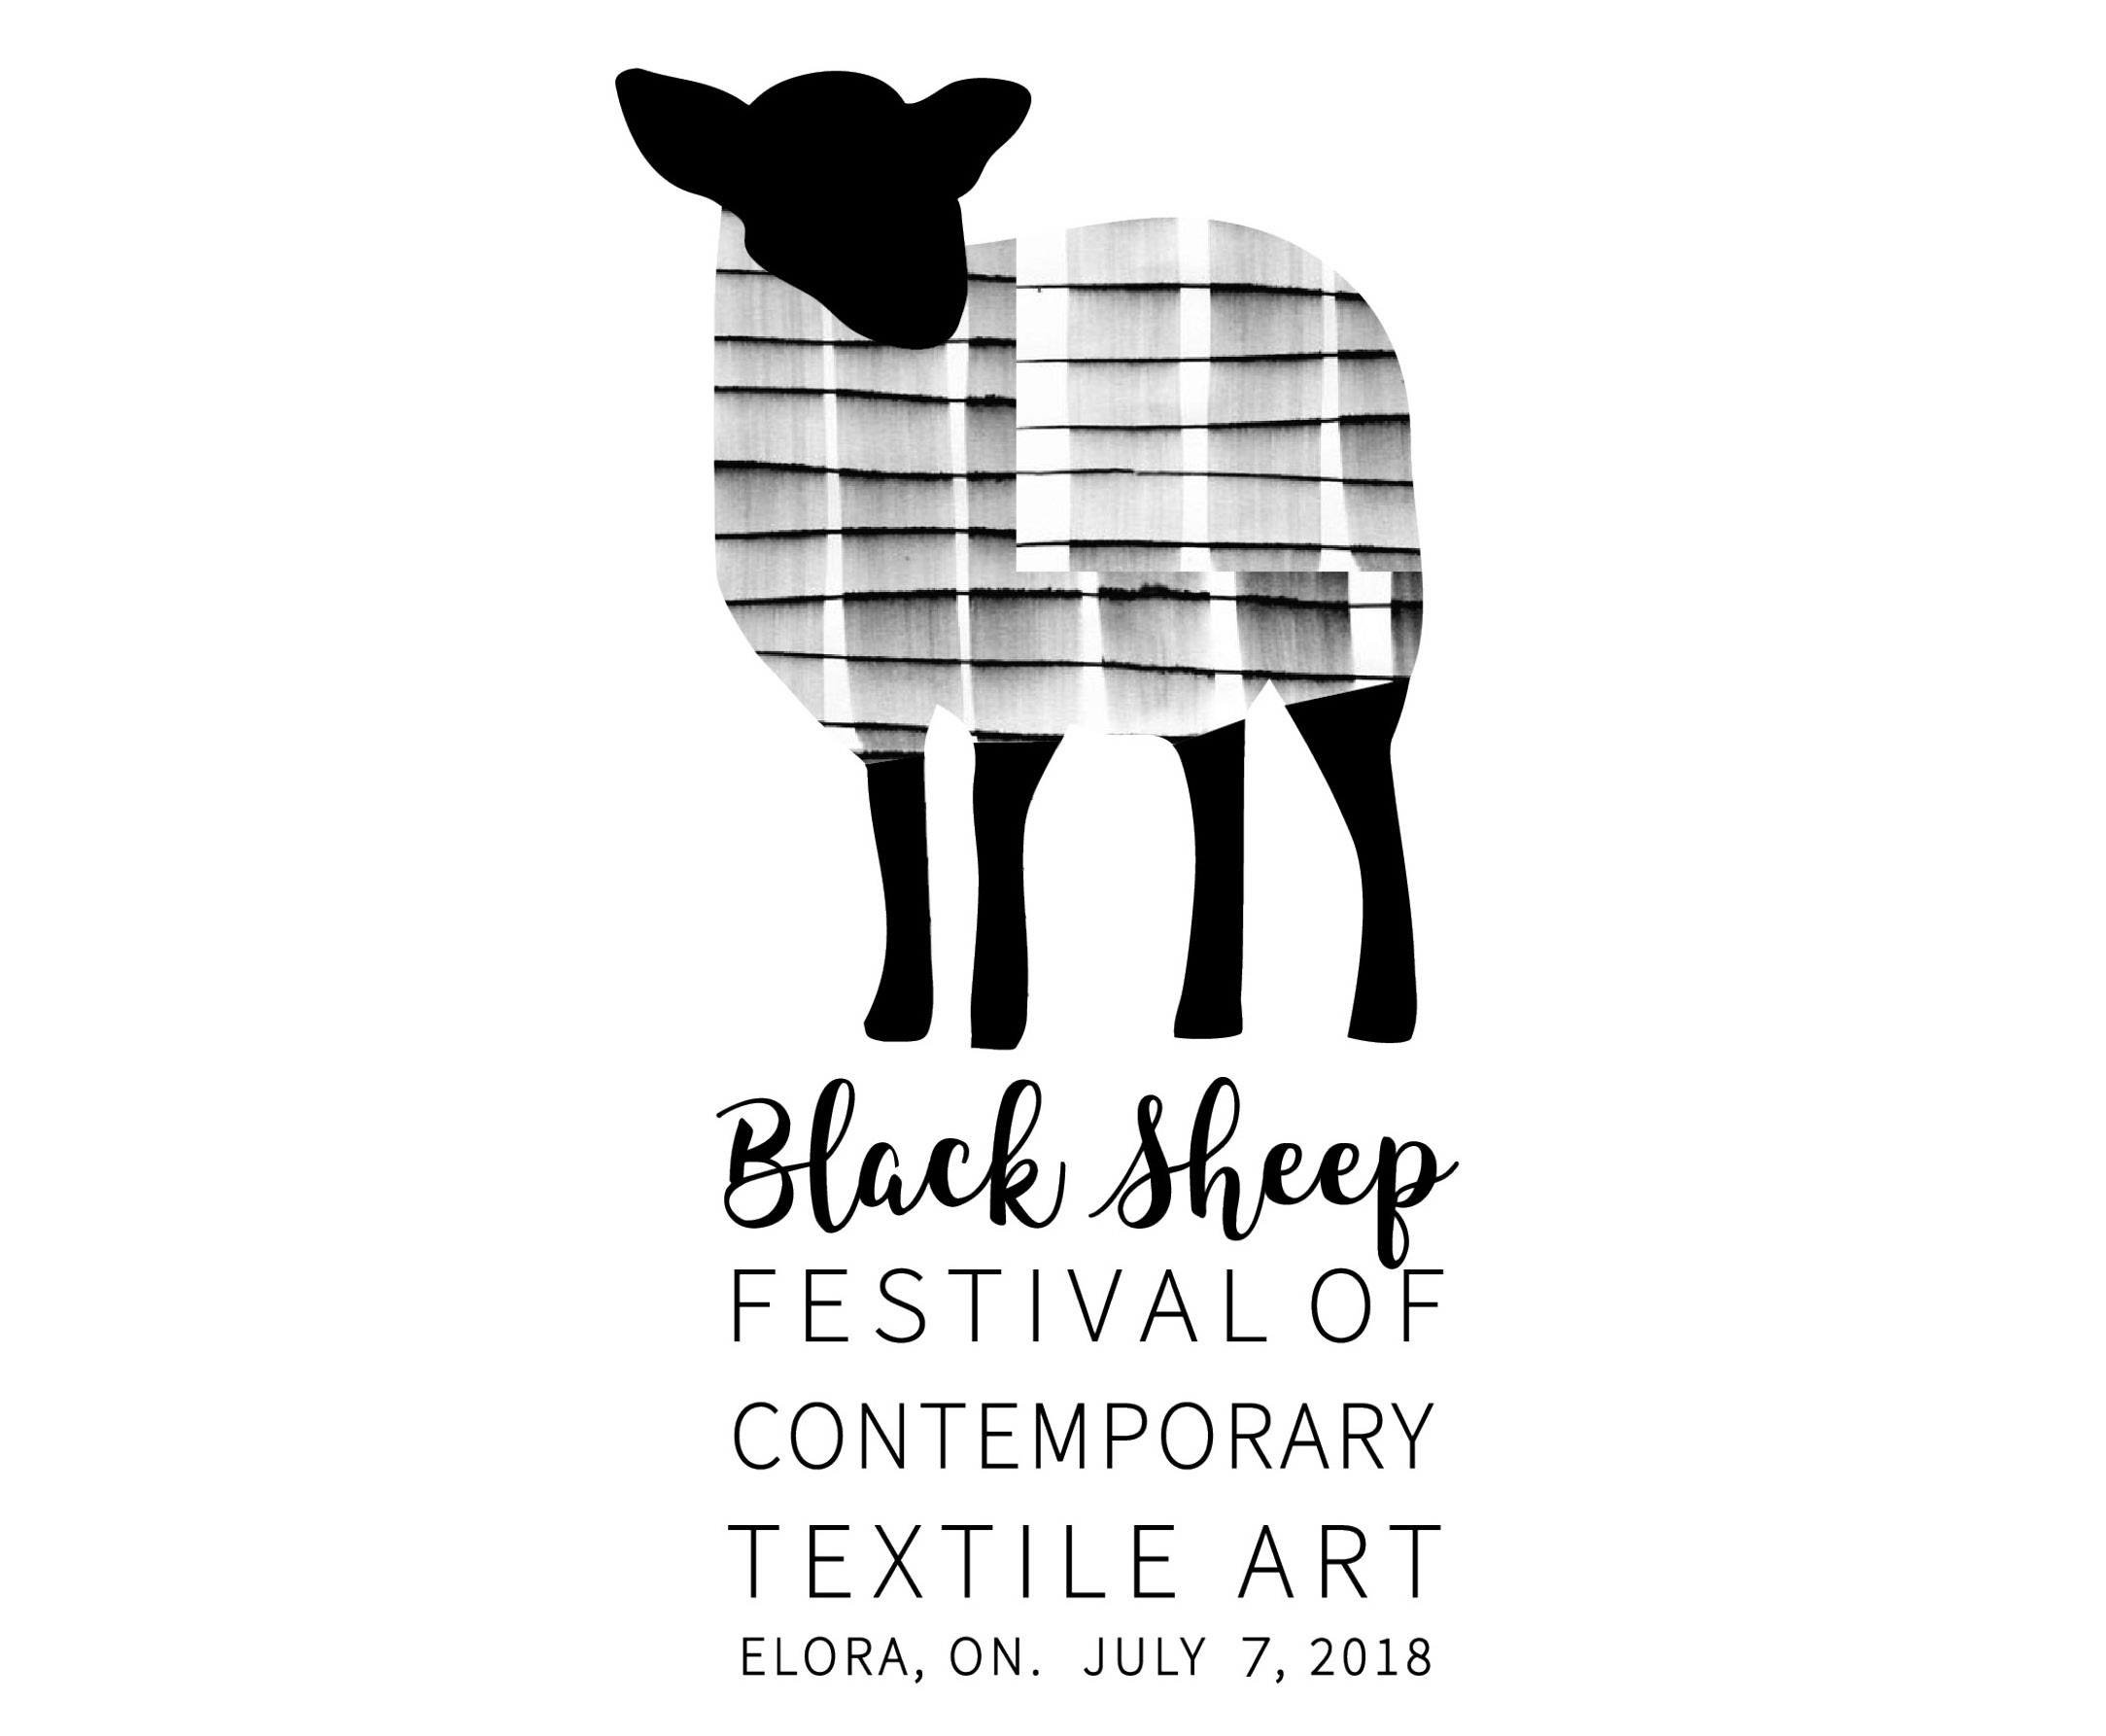 Black Sheep Festival Of Contemporary Textile Art